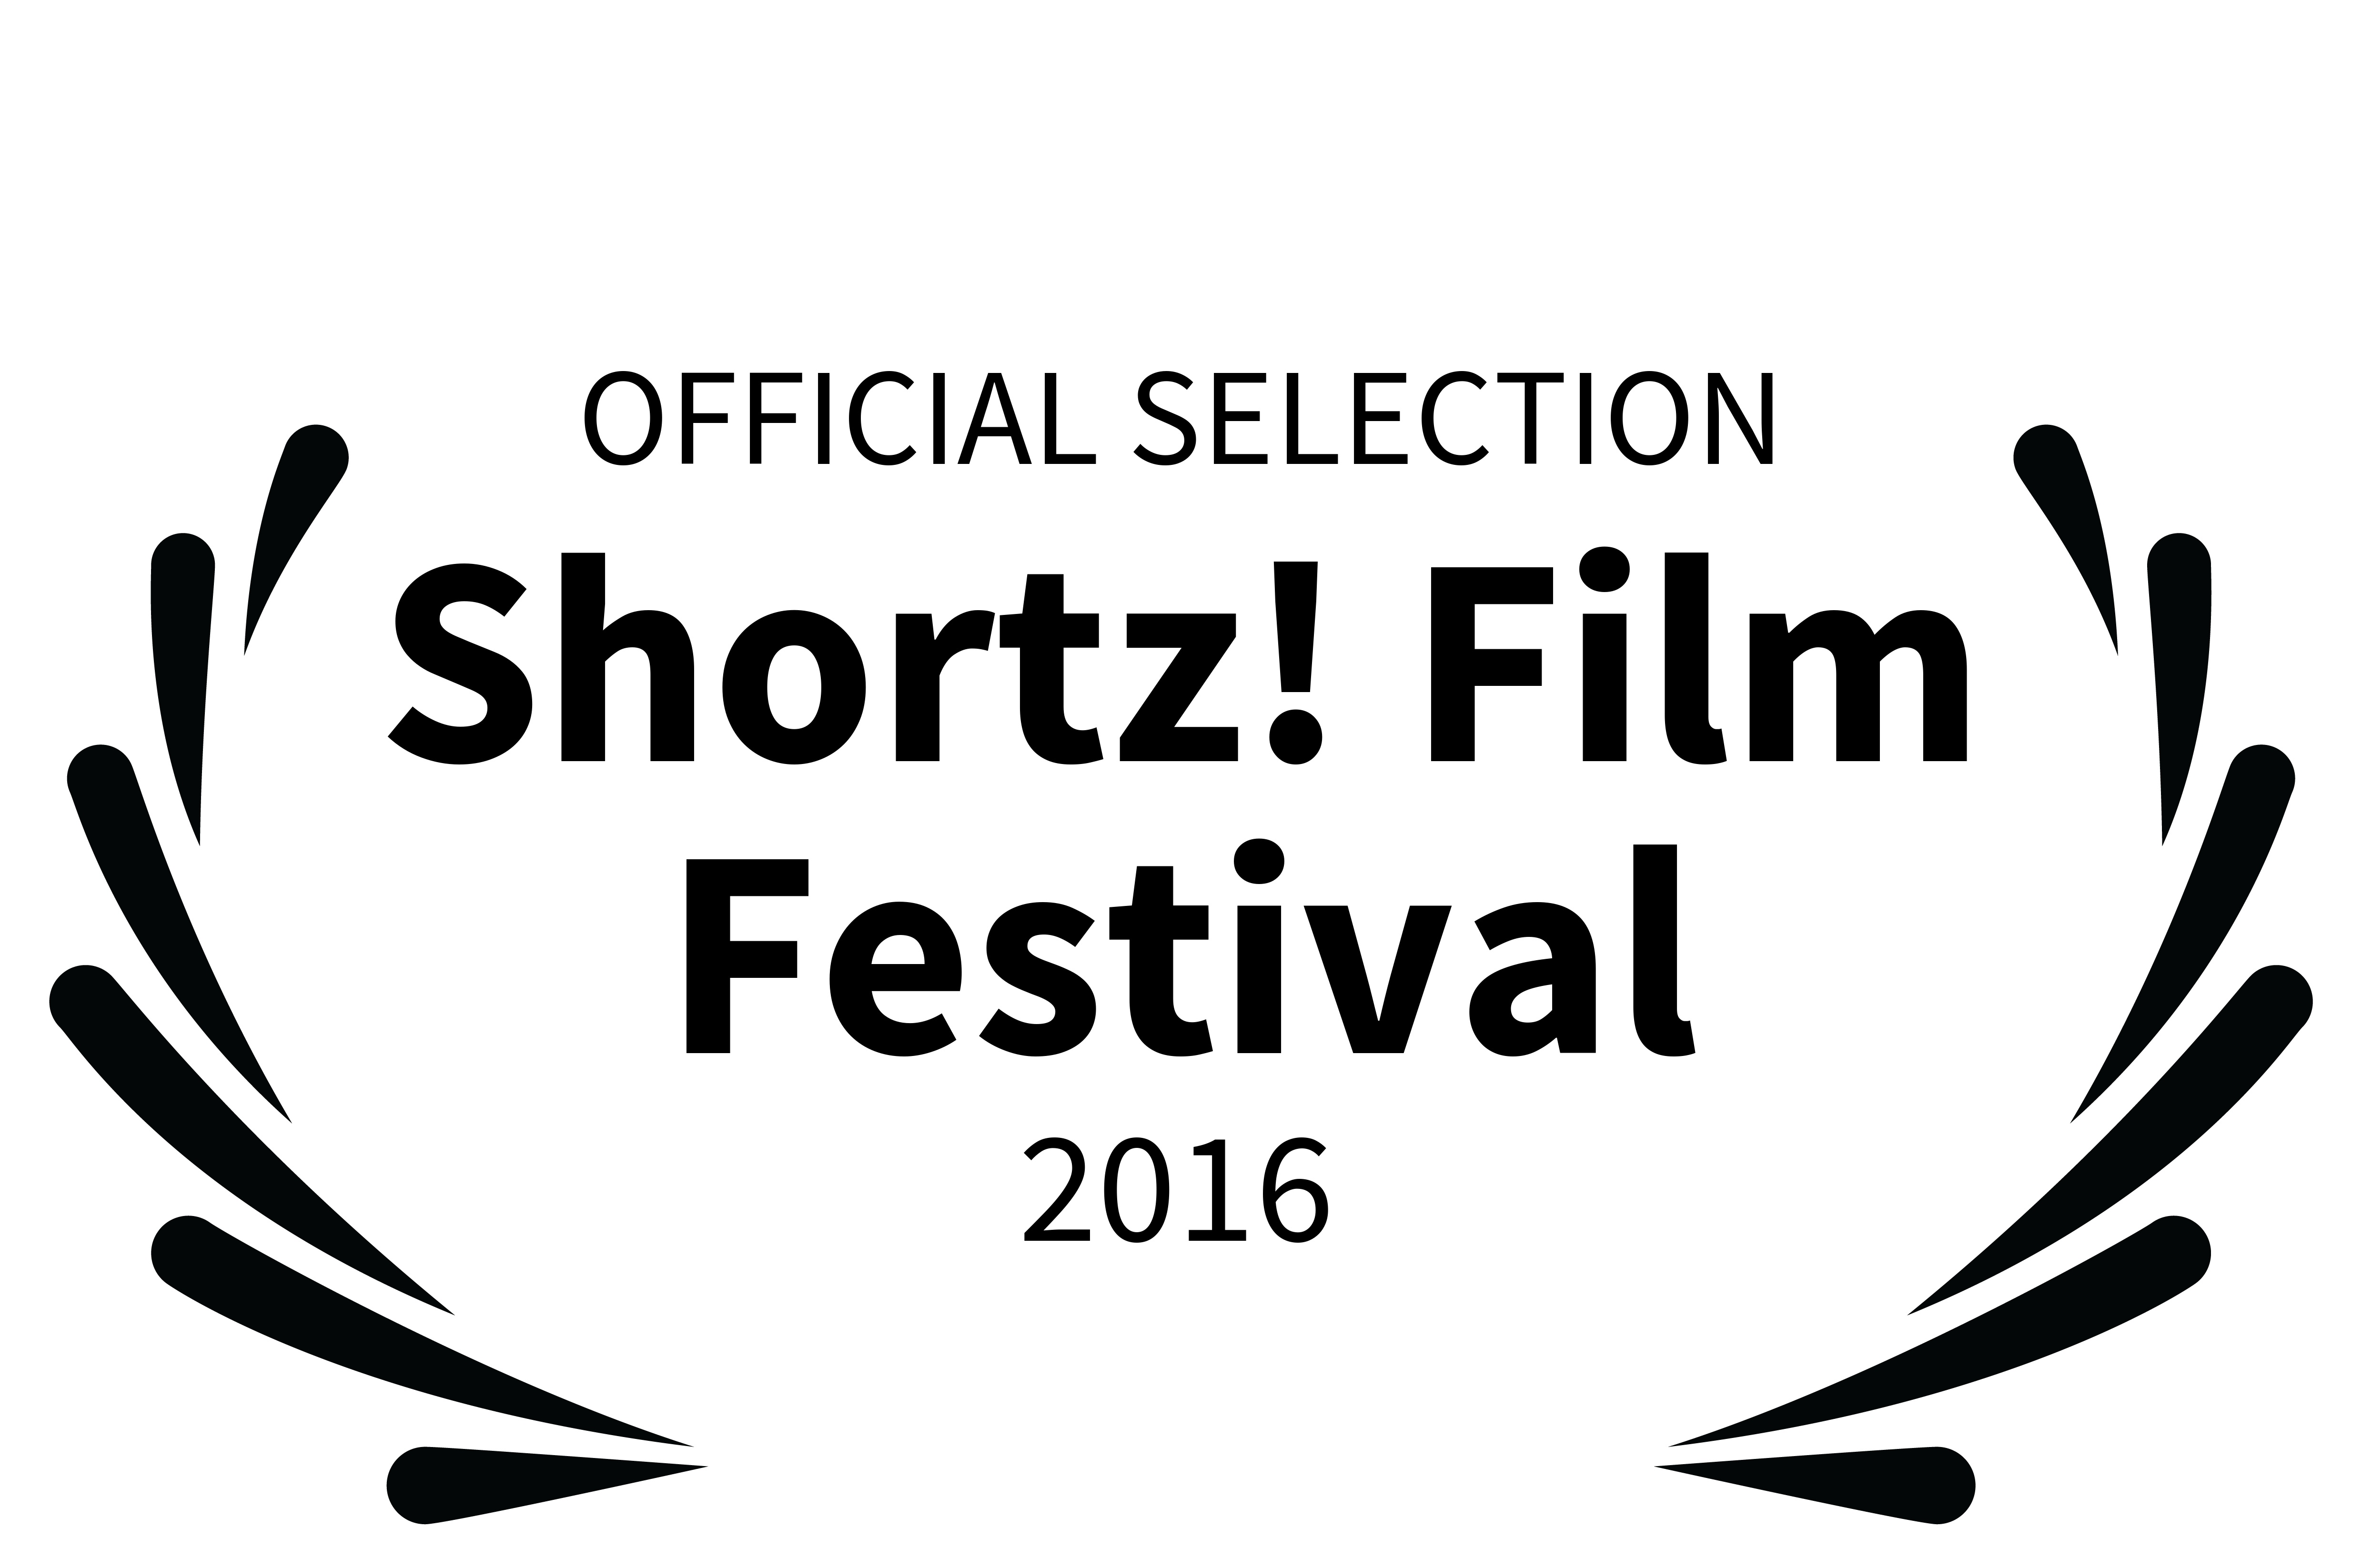 Films/OFFICIALSELECTION-ShortzFilmFestival-2016.jpg